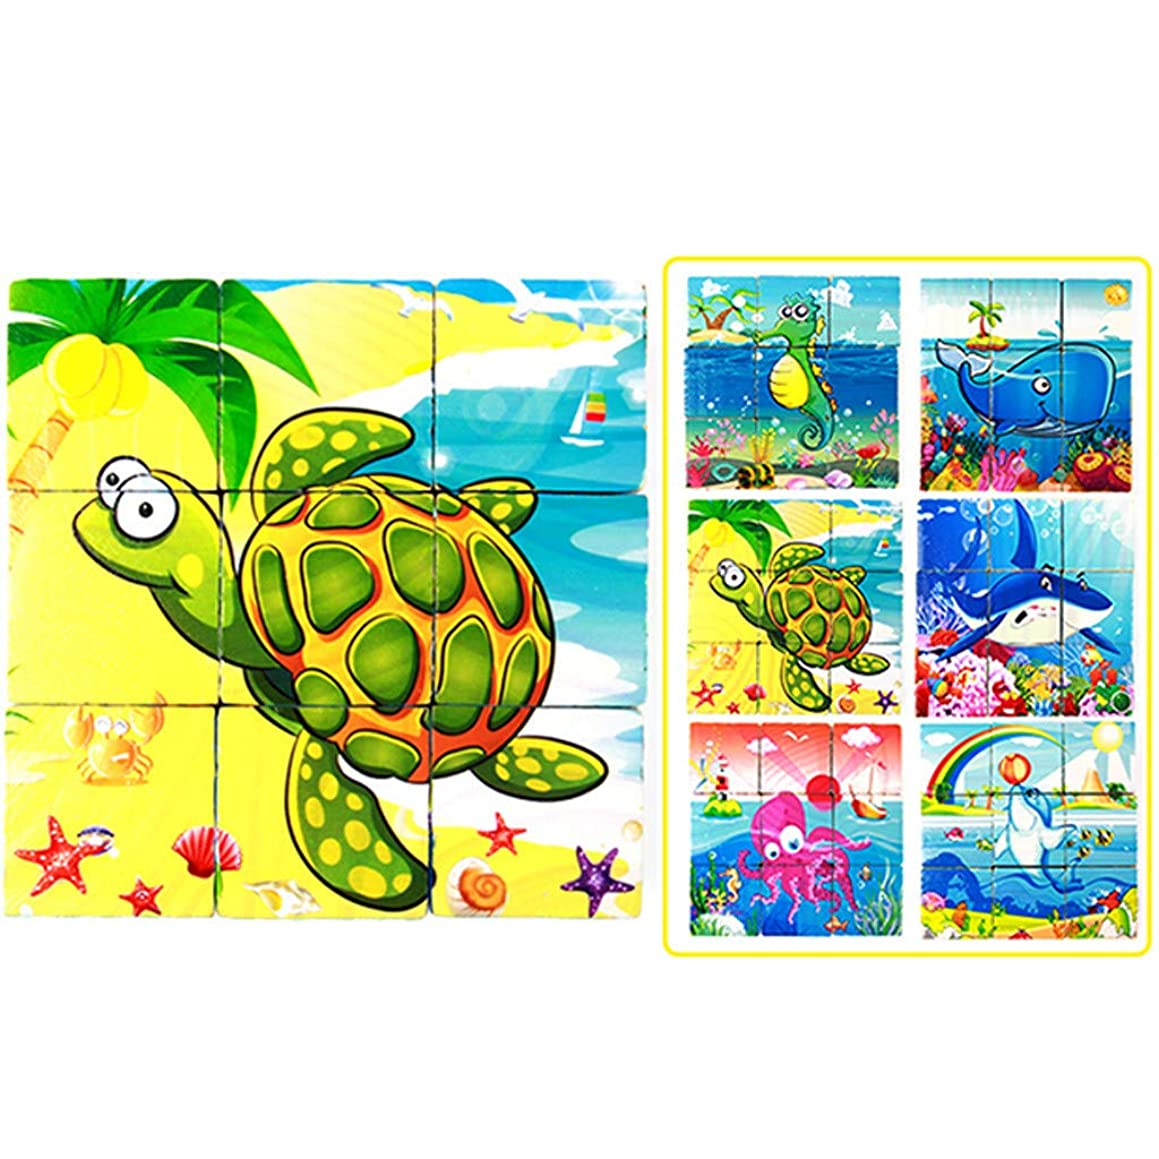 Wooden Animal Block Puzzle Jigsaw Educational Brain Teasers Toys for Toddlers for Kid Boys Girls